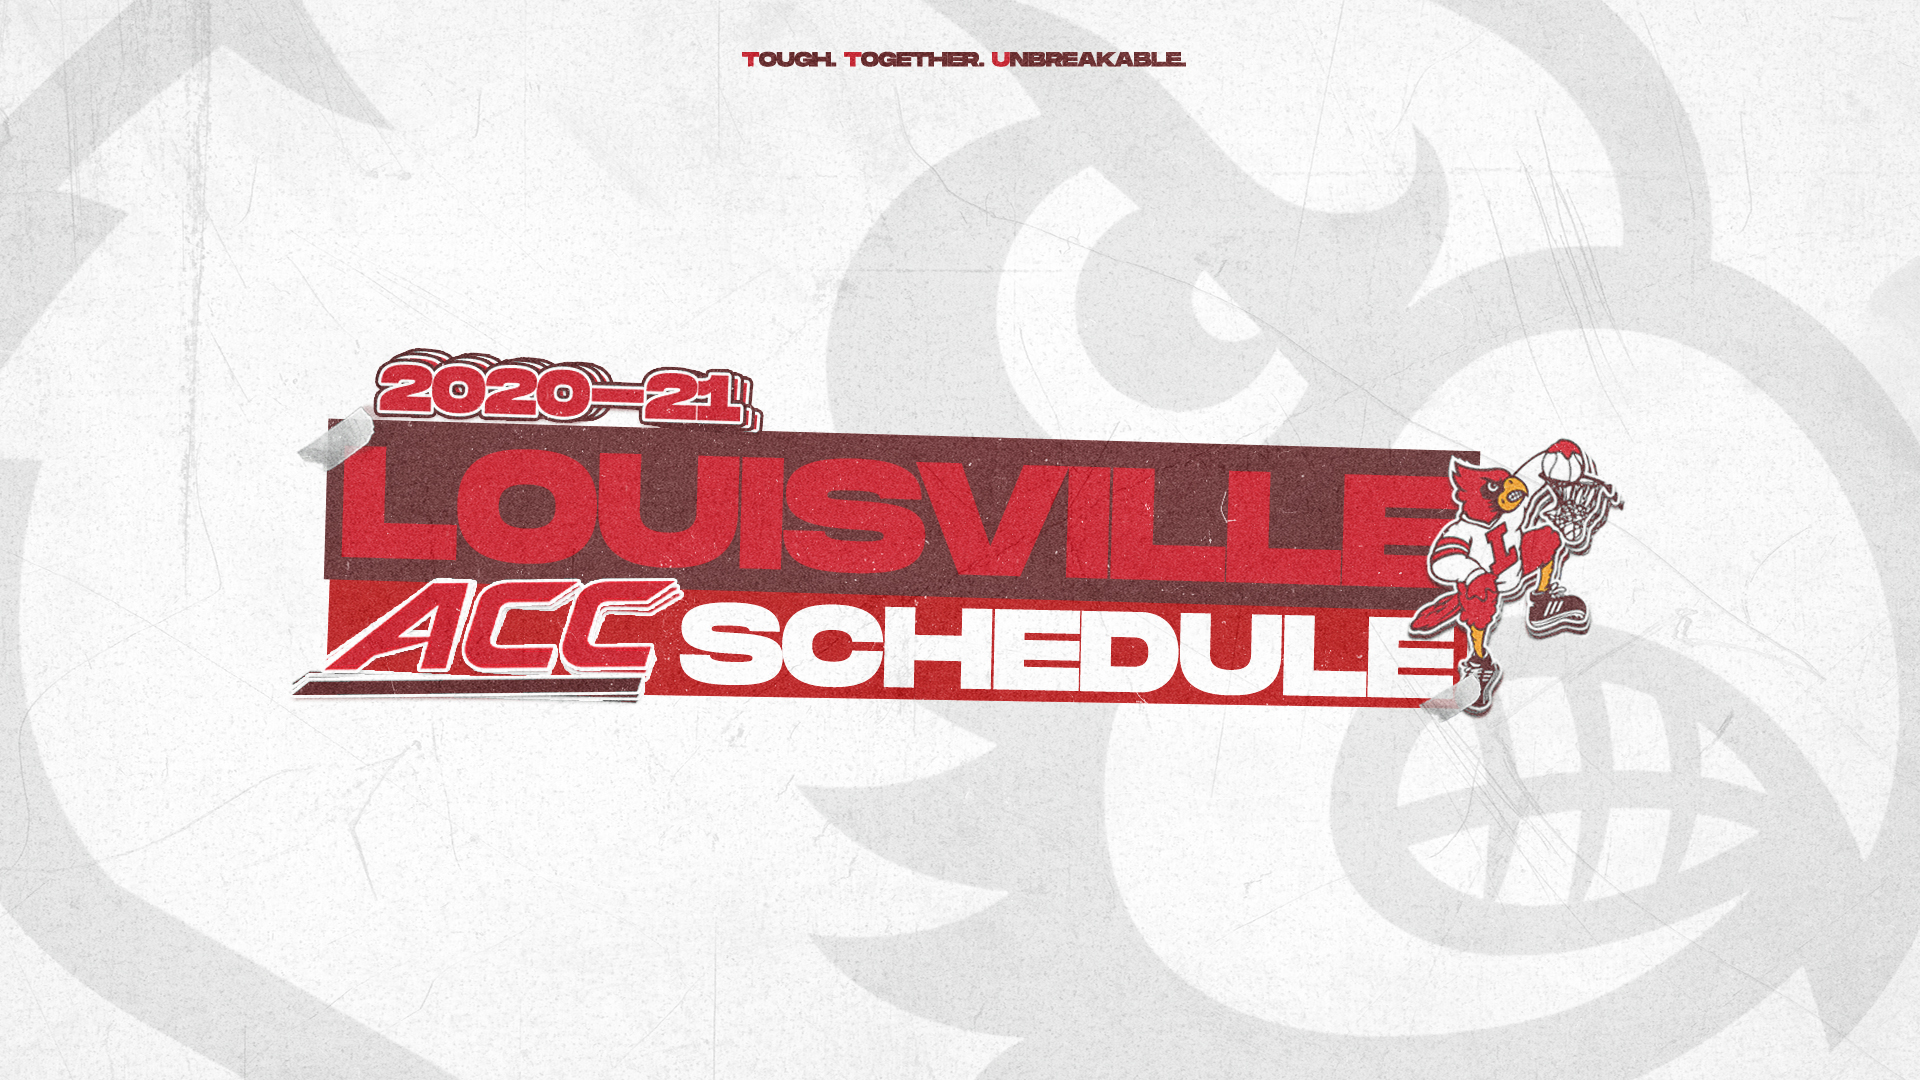 Acc Slate Completes 2020 21 Cards Men S Basketball Schedule University Of Louisville Athletics